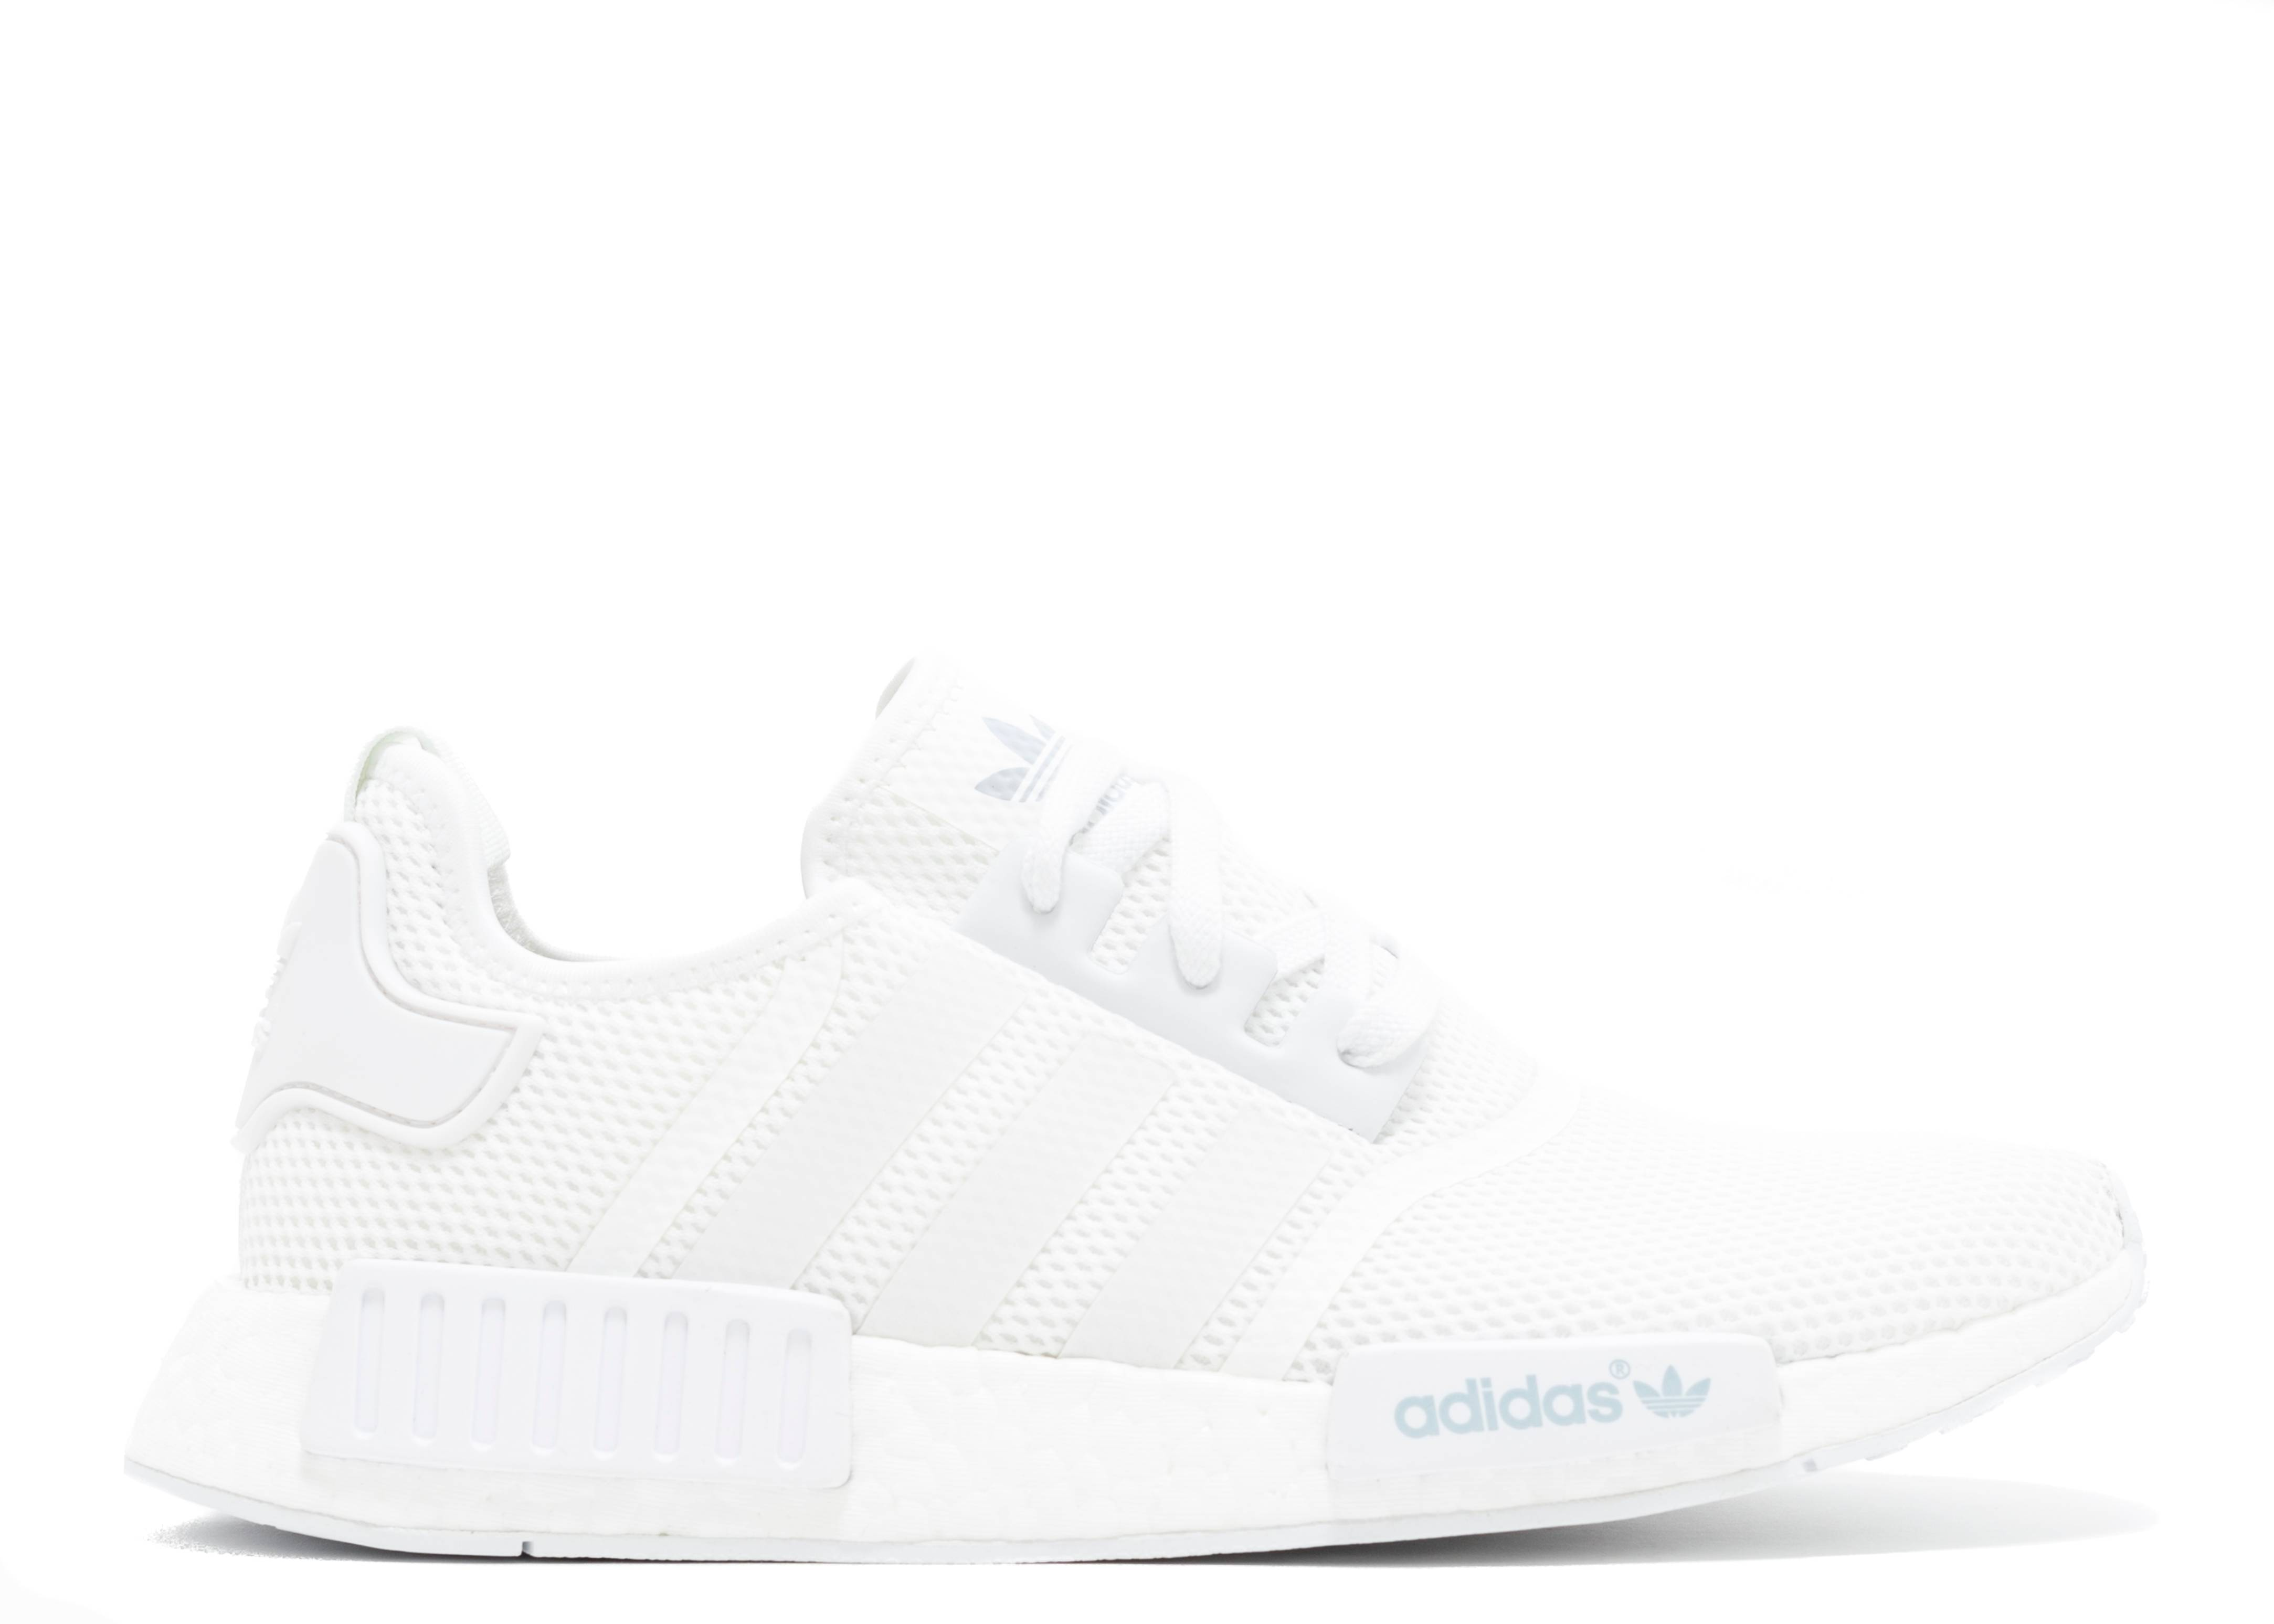 Cheap Nmd R1 Shoes For Sale Buy Gucci X Nmd R1 Boost Online